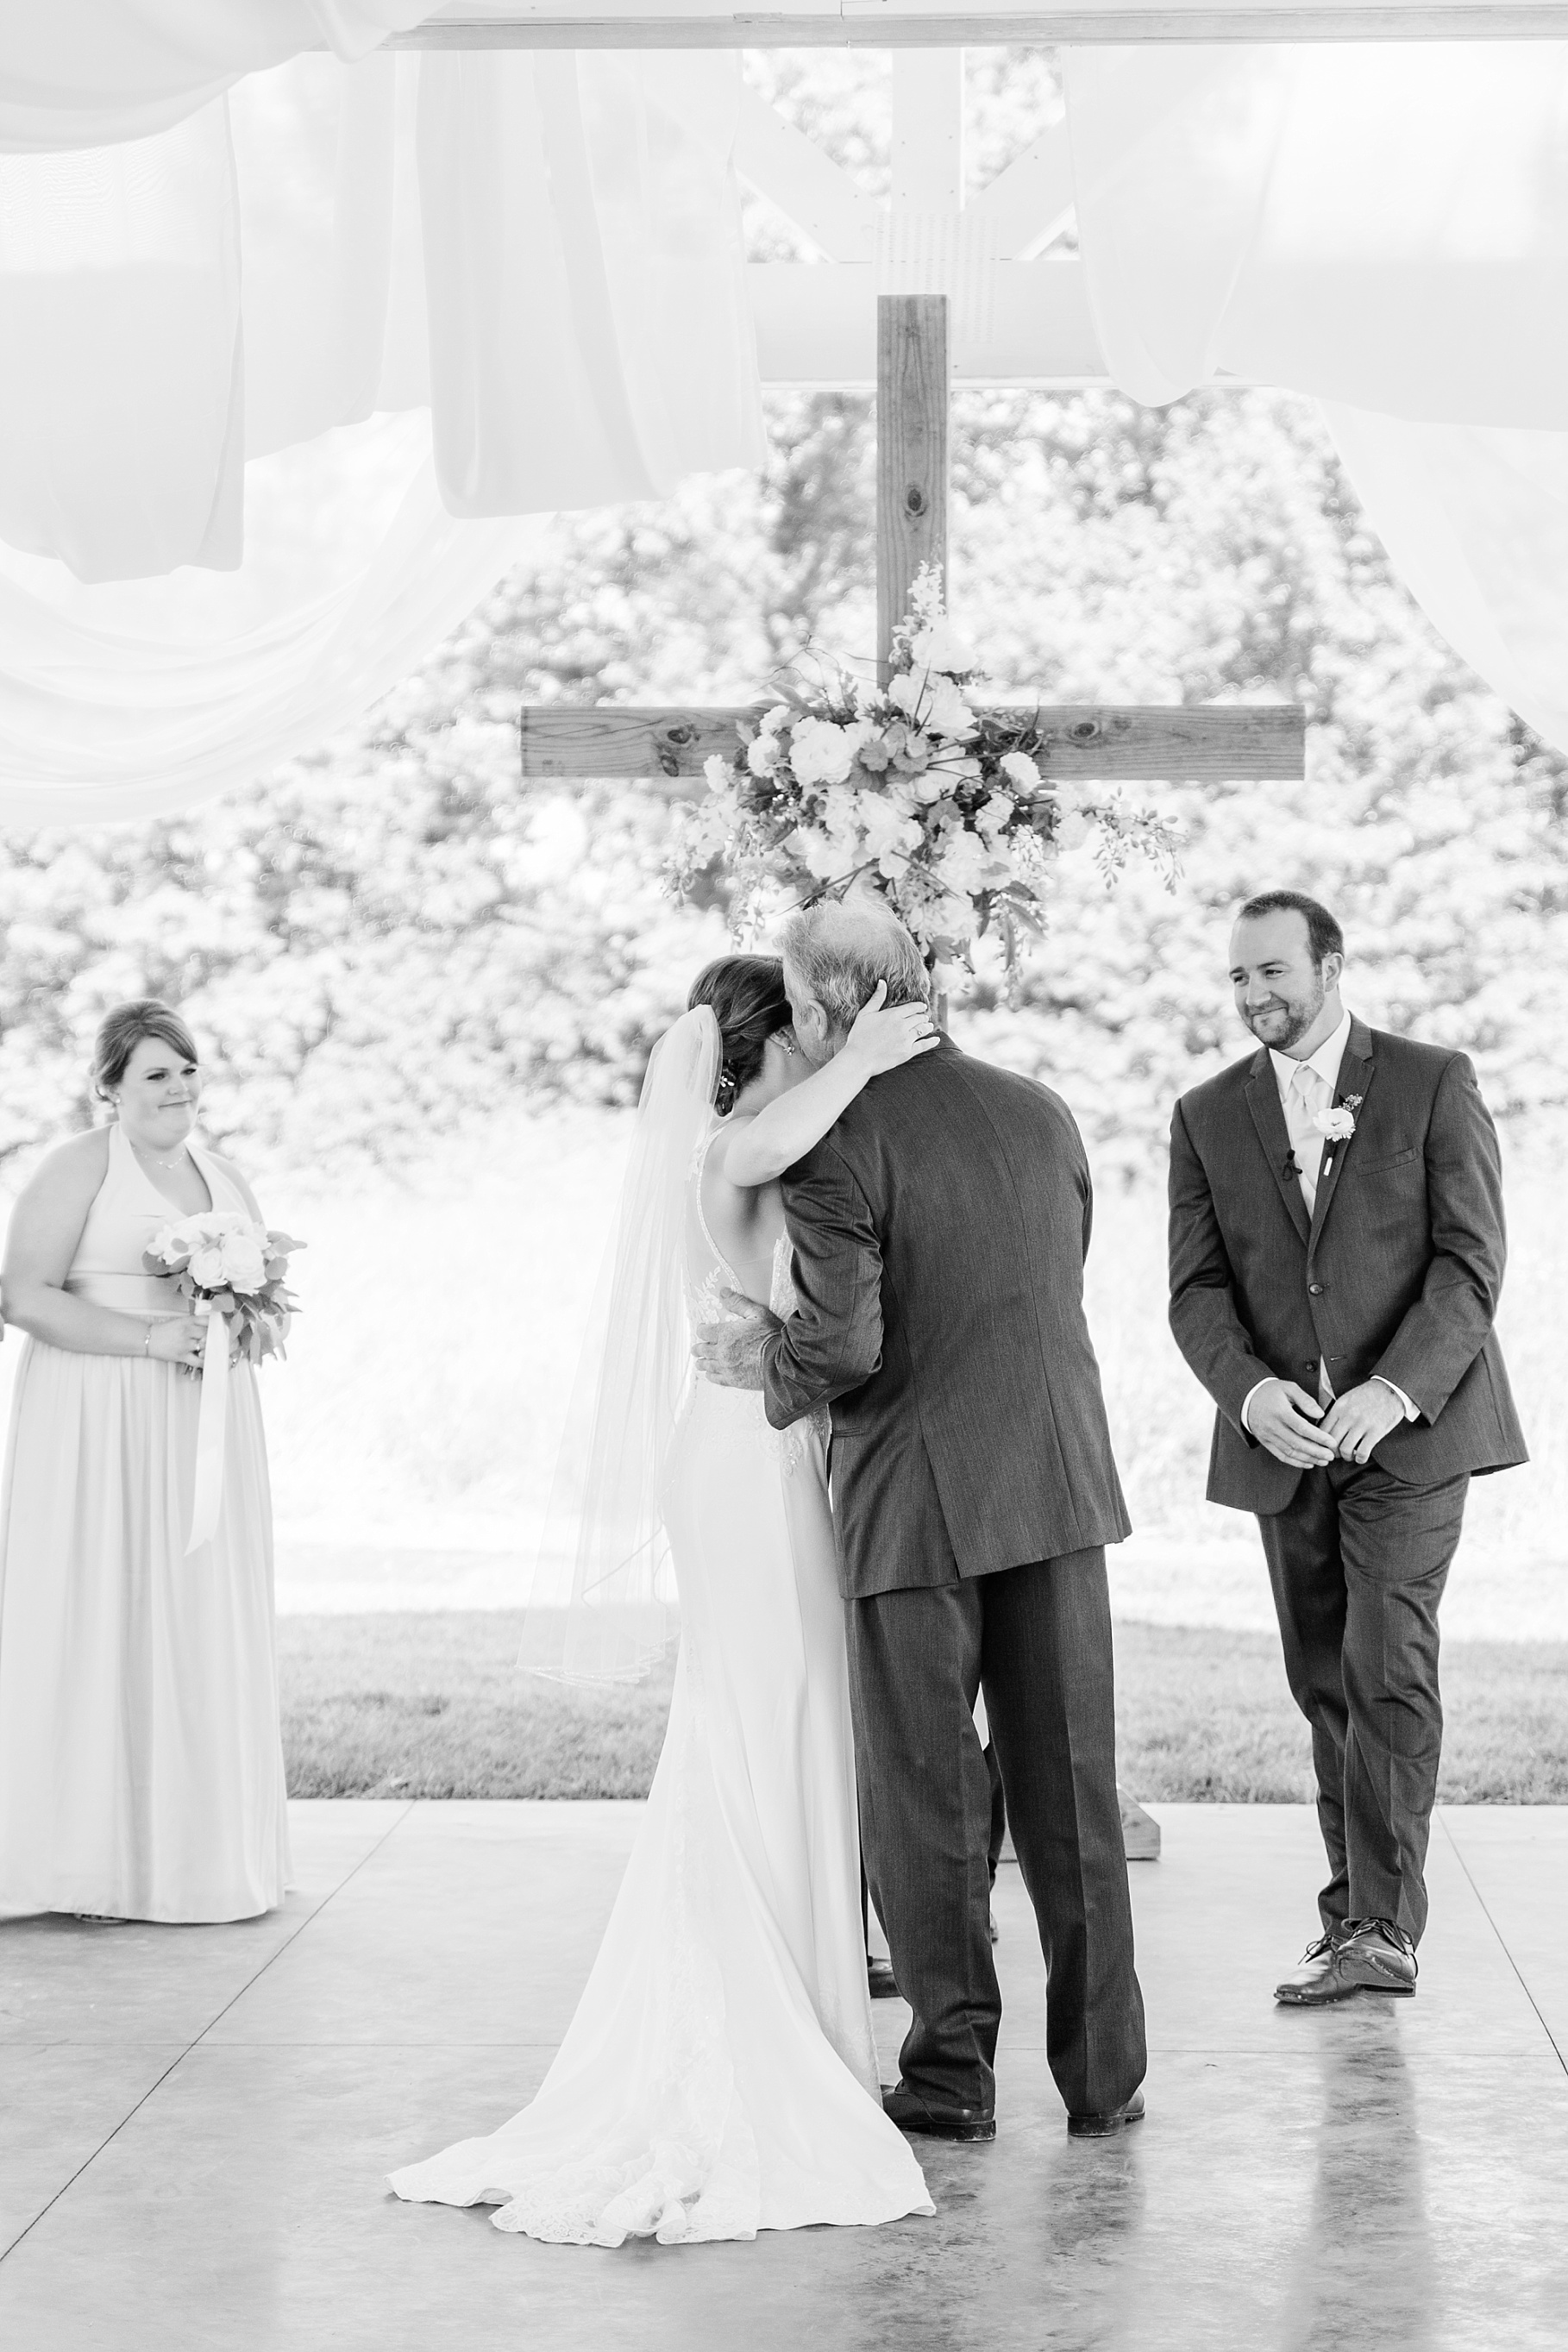 Wedding Ceremony with Confetti Pop at Emerson Fields Venue by Associate Wedding Photographer for Kelsi Kliethermes Photography Best Columbia Missouri and Maui Hawaii Wedding Photographer_0051.jpg